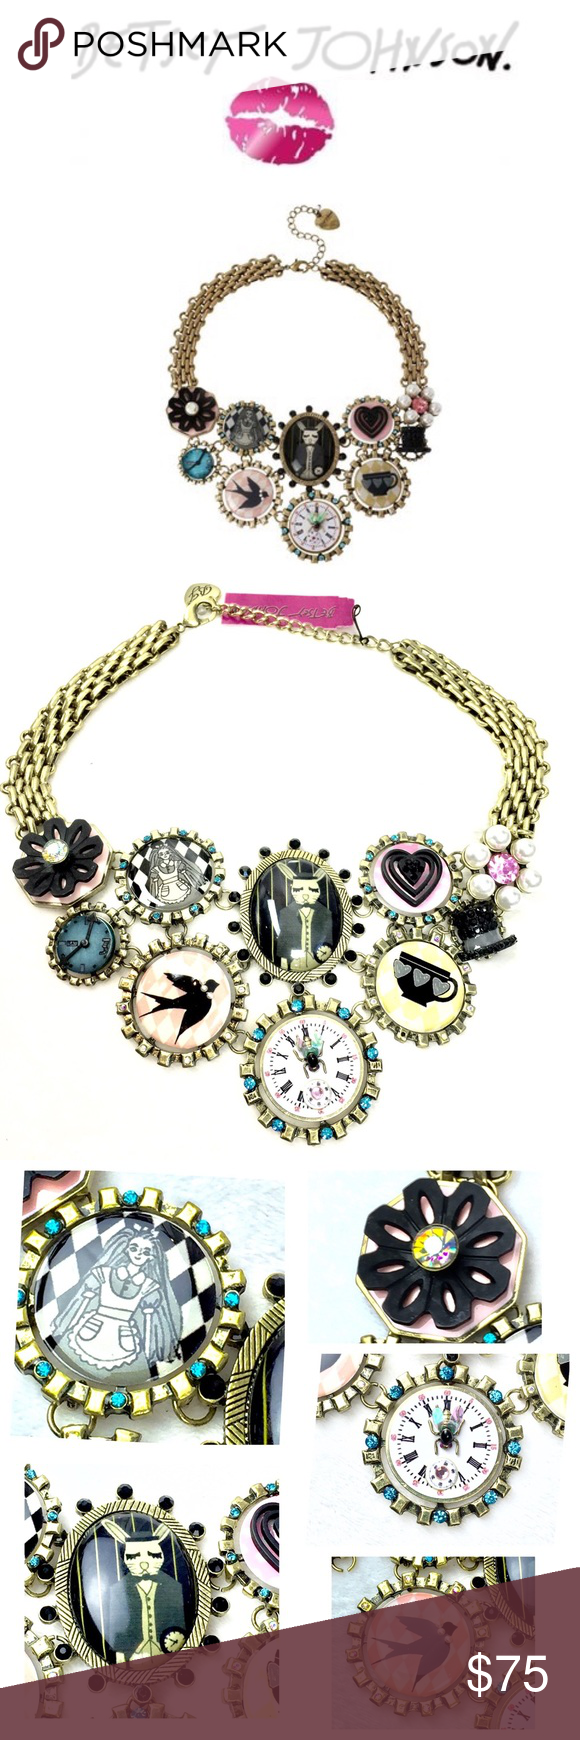 """Betsey Johnson Wonderland Drama Statement Necklace Statement frontal necklace with mixed multi-colored round and oval-shaped Wonderland-inspired charms help you shine from day to night. Set in a brass OX mixed metal. Gold tone necklace. Crystal accents. Lobster claw. Brass OX. Metal/plastic/glass. 1/8mm pearl. Plastic. 16"""" length + 3 """" extender; frontal drop 3.75"""" non-smoking home, pet free zone.  Brand new with tags.  Collectors item.  Bundle with earrings and bracelet for a complete…"""